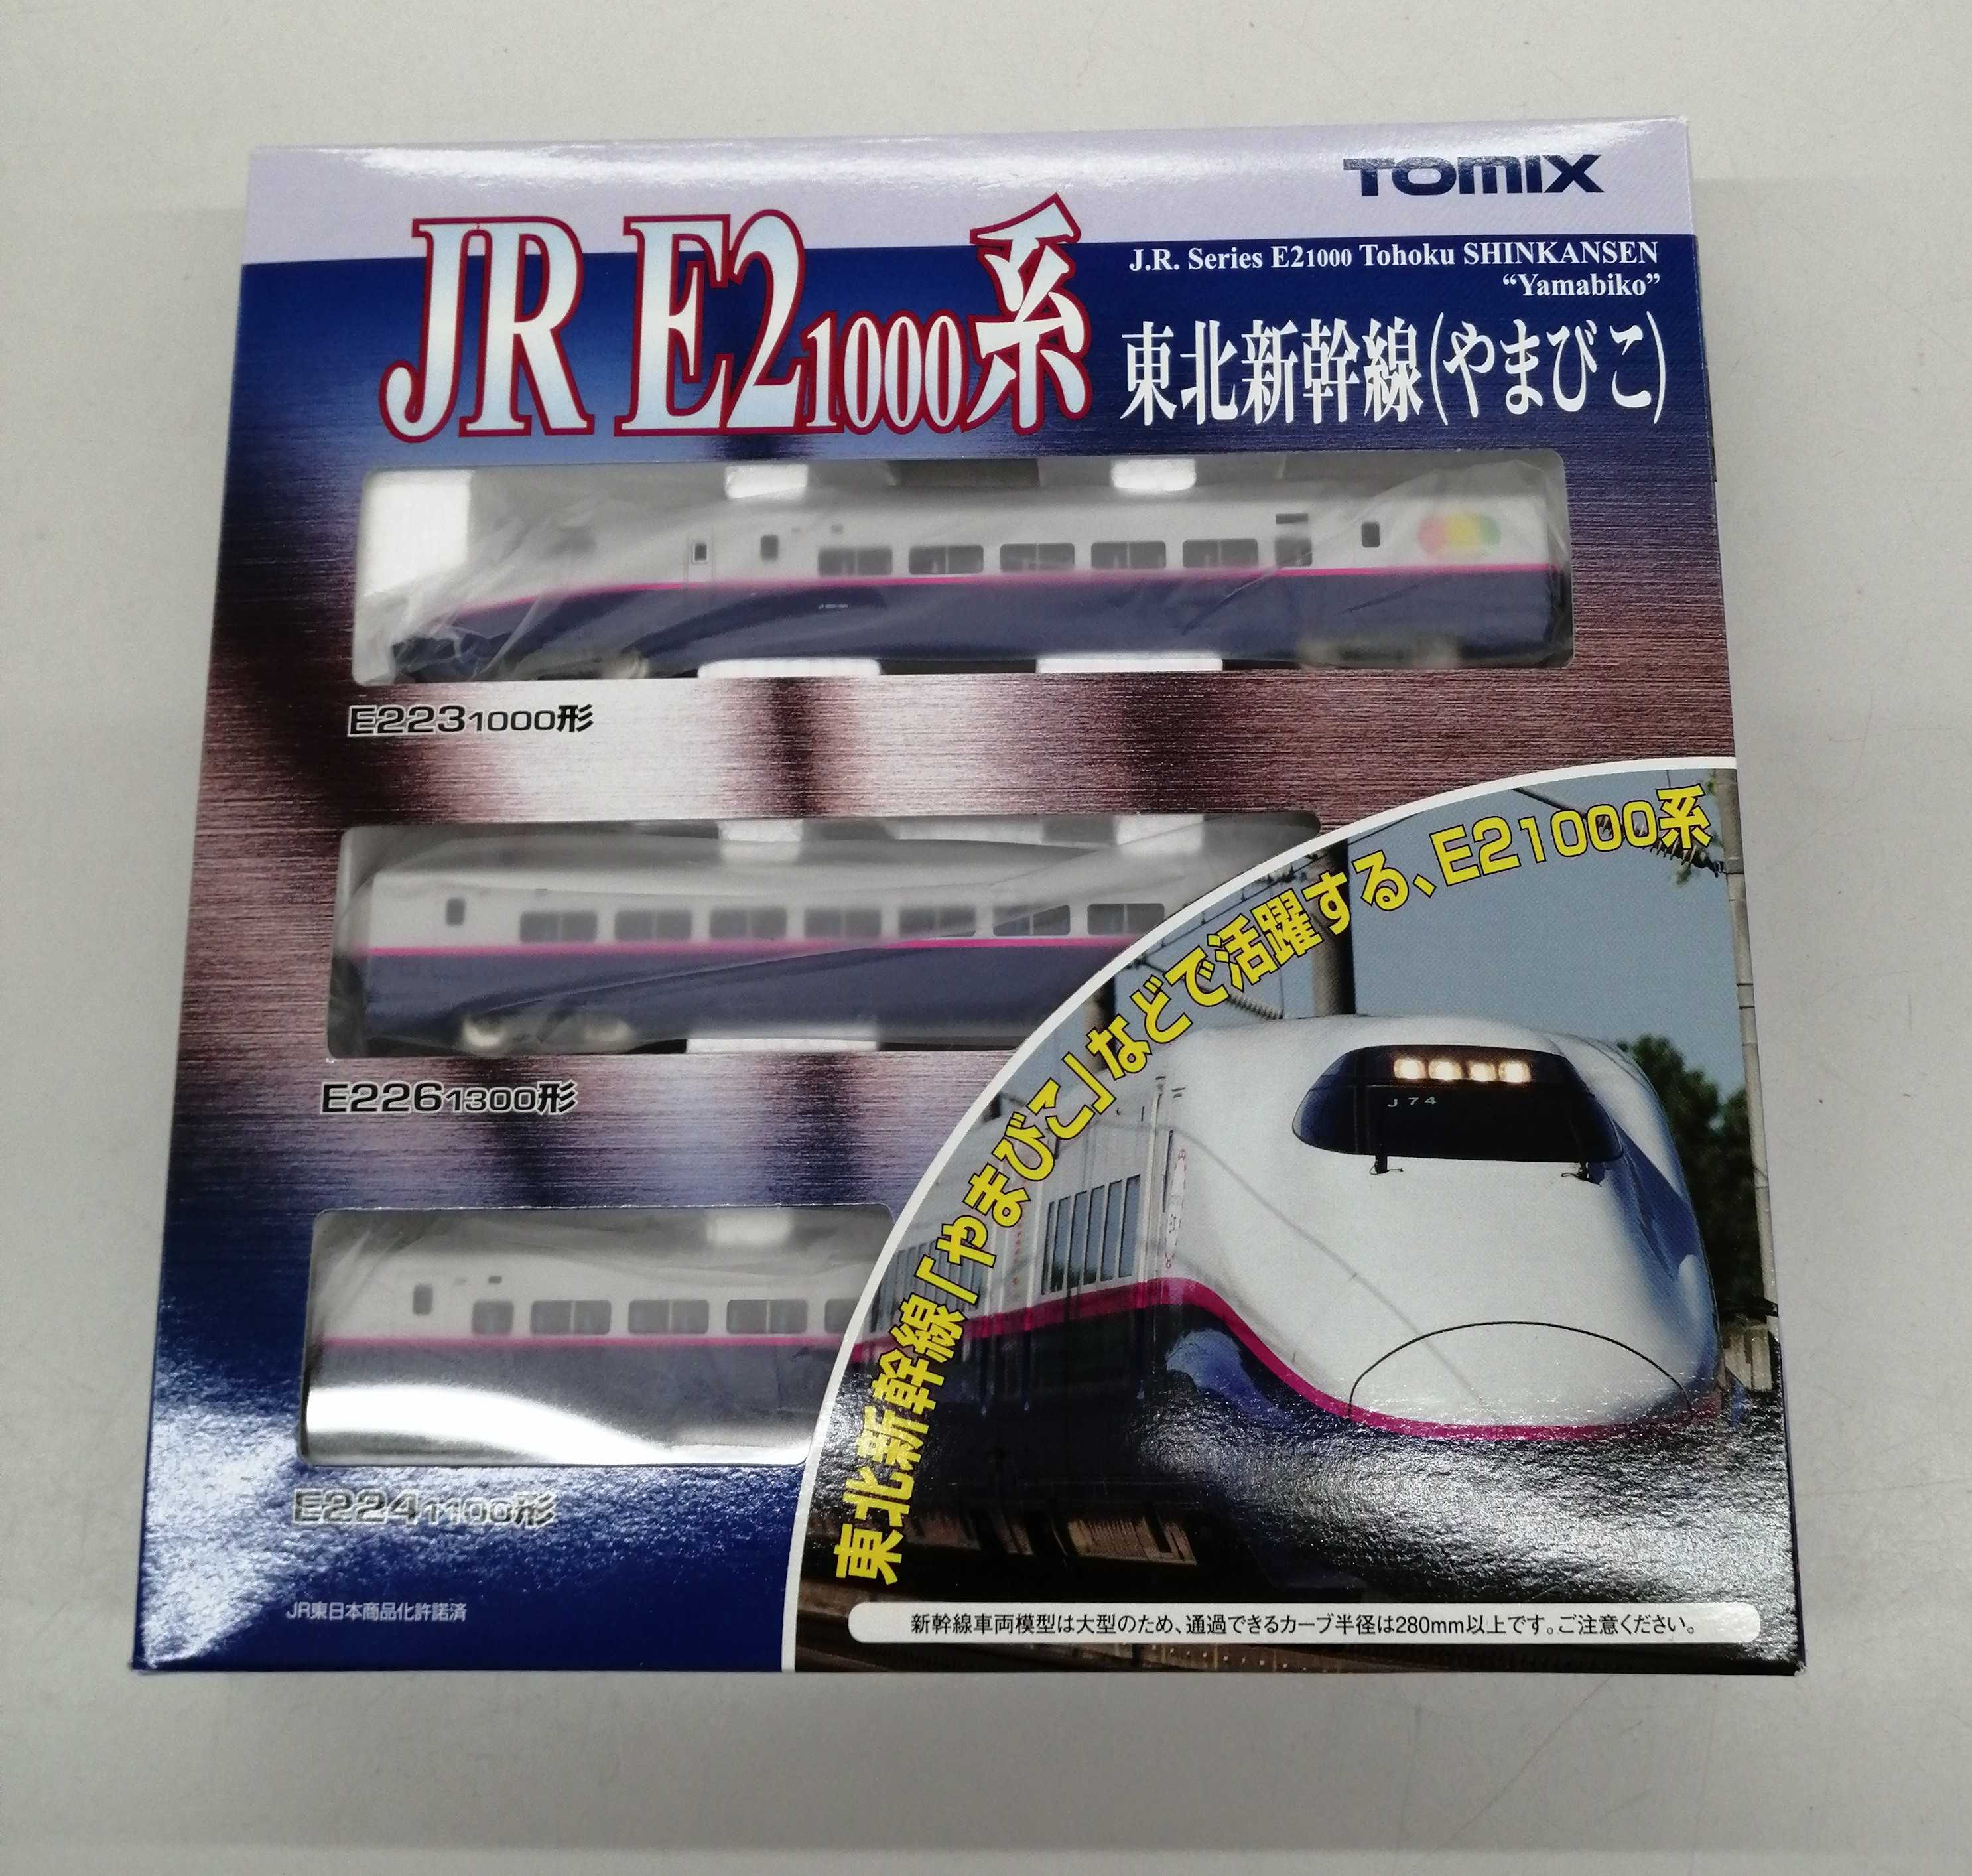 JR E2 1000系東北新幹線やまびこ|TOMIX